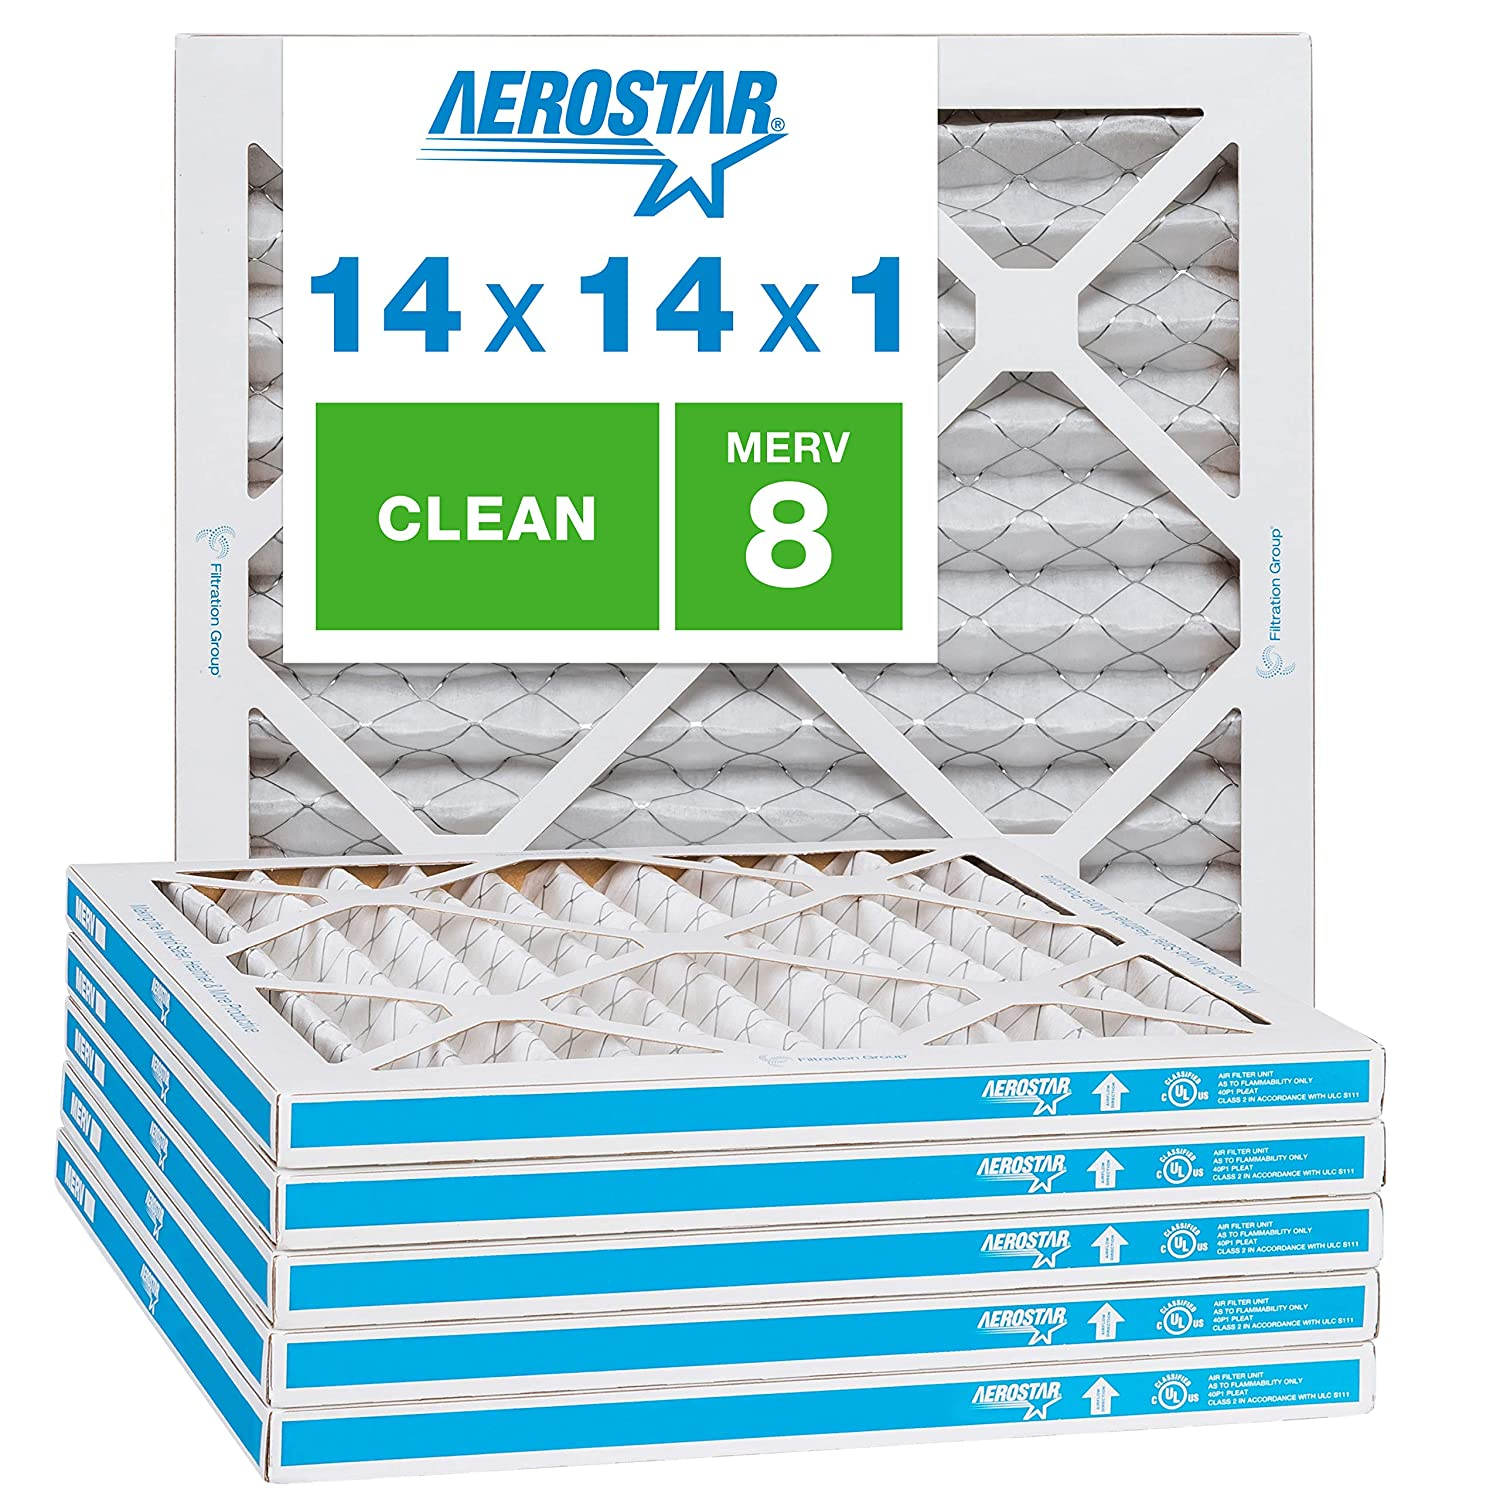 "Aerostar Clean House 14x14x1 MERV 8 Pleated Air Filter, Made in the USA, (Actual Size: 13 3/4""x13 3/4""x3/4""), 6-Pack,White"